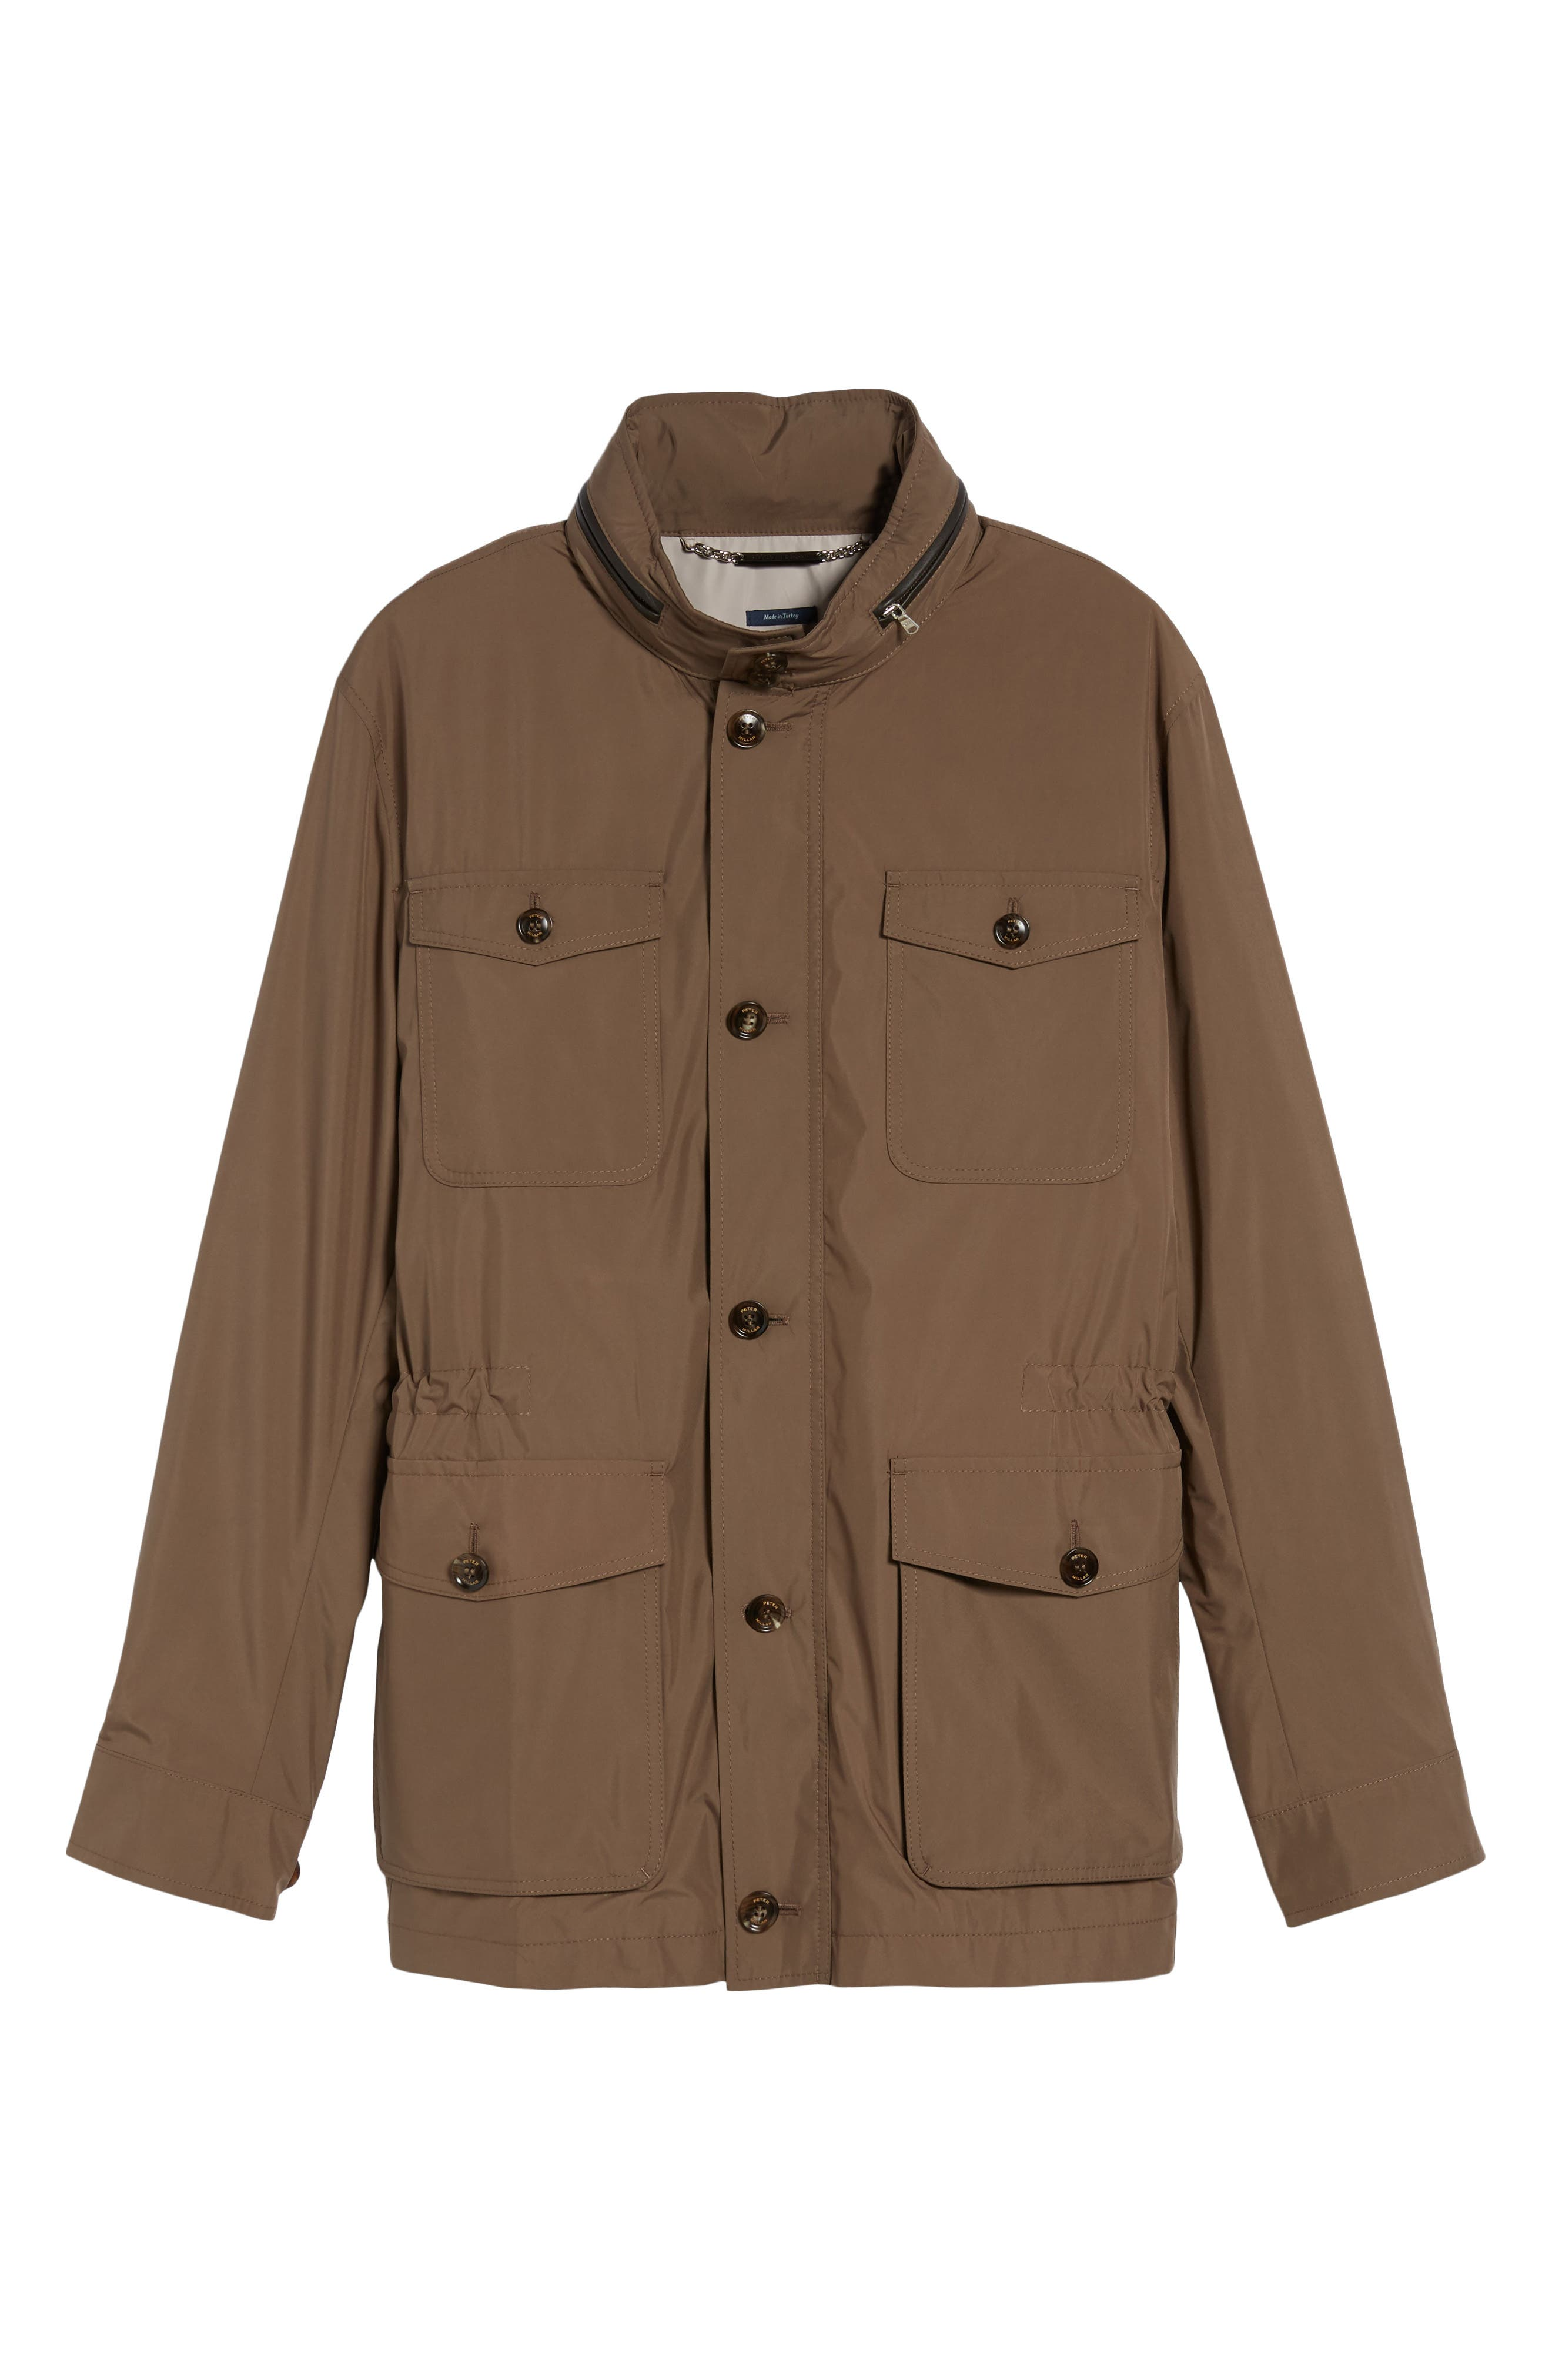 All Weather Discovery Jacket,                             Alternate thumbnail 5, color,                             240